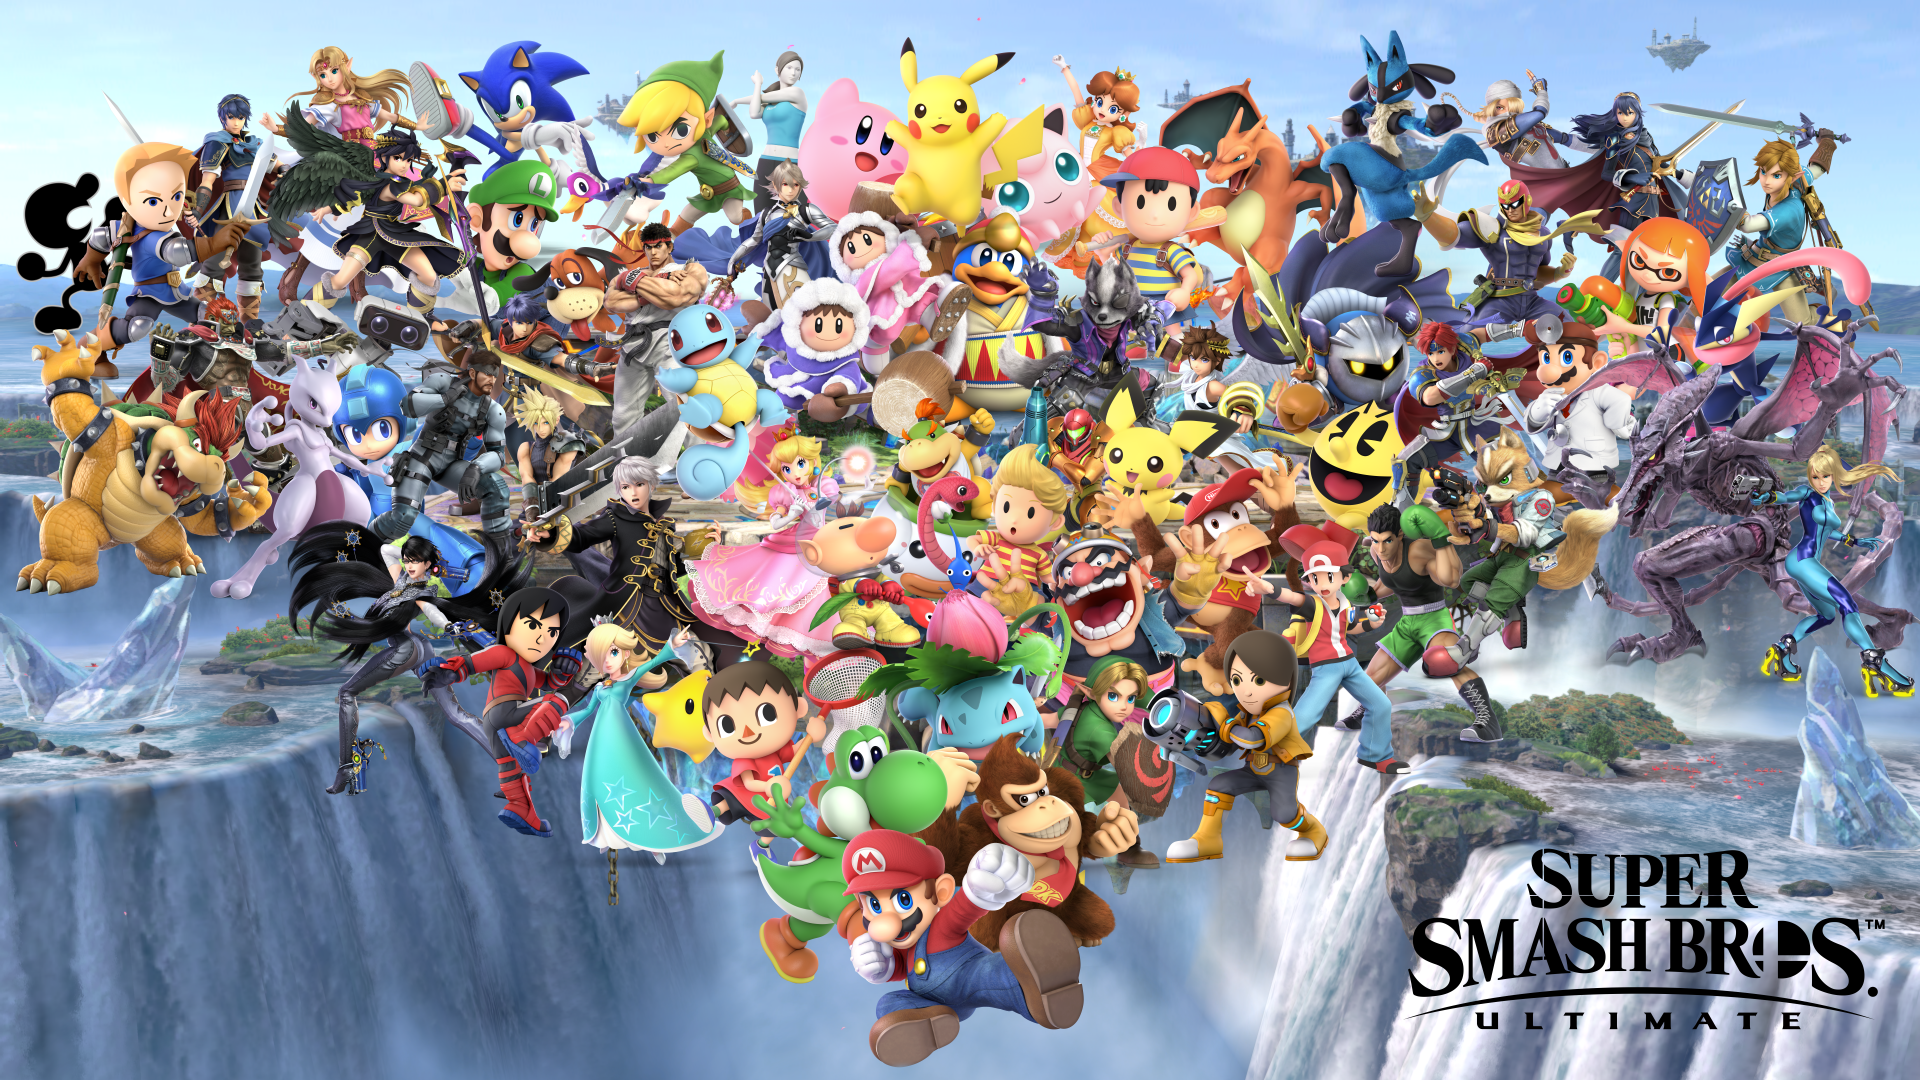 22 Super Smash Bros Ultimate Hd Wallpapers On Wallpapersafari